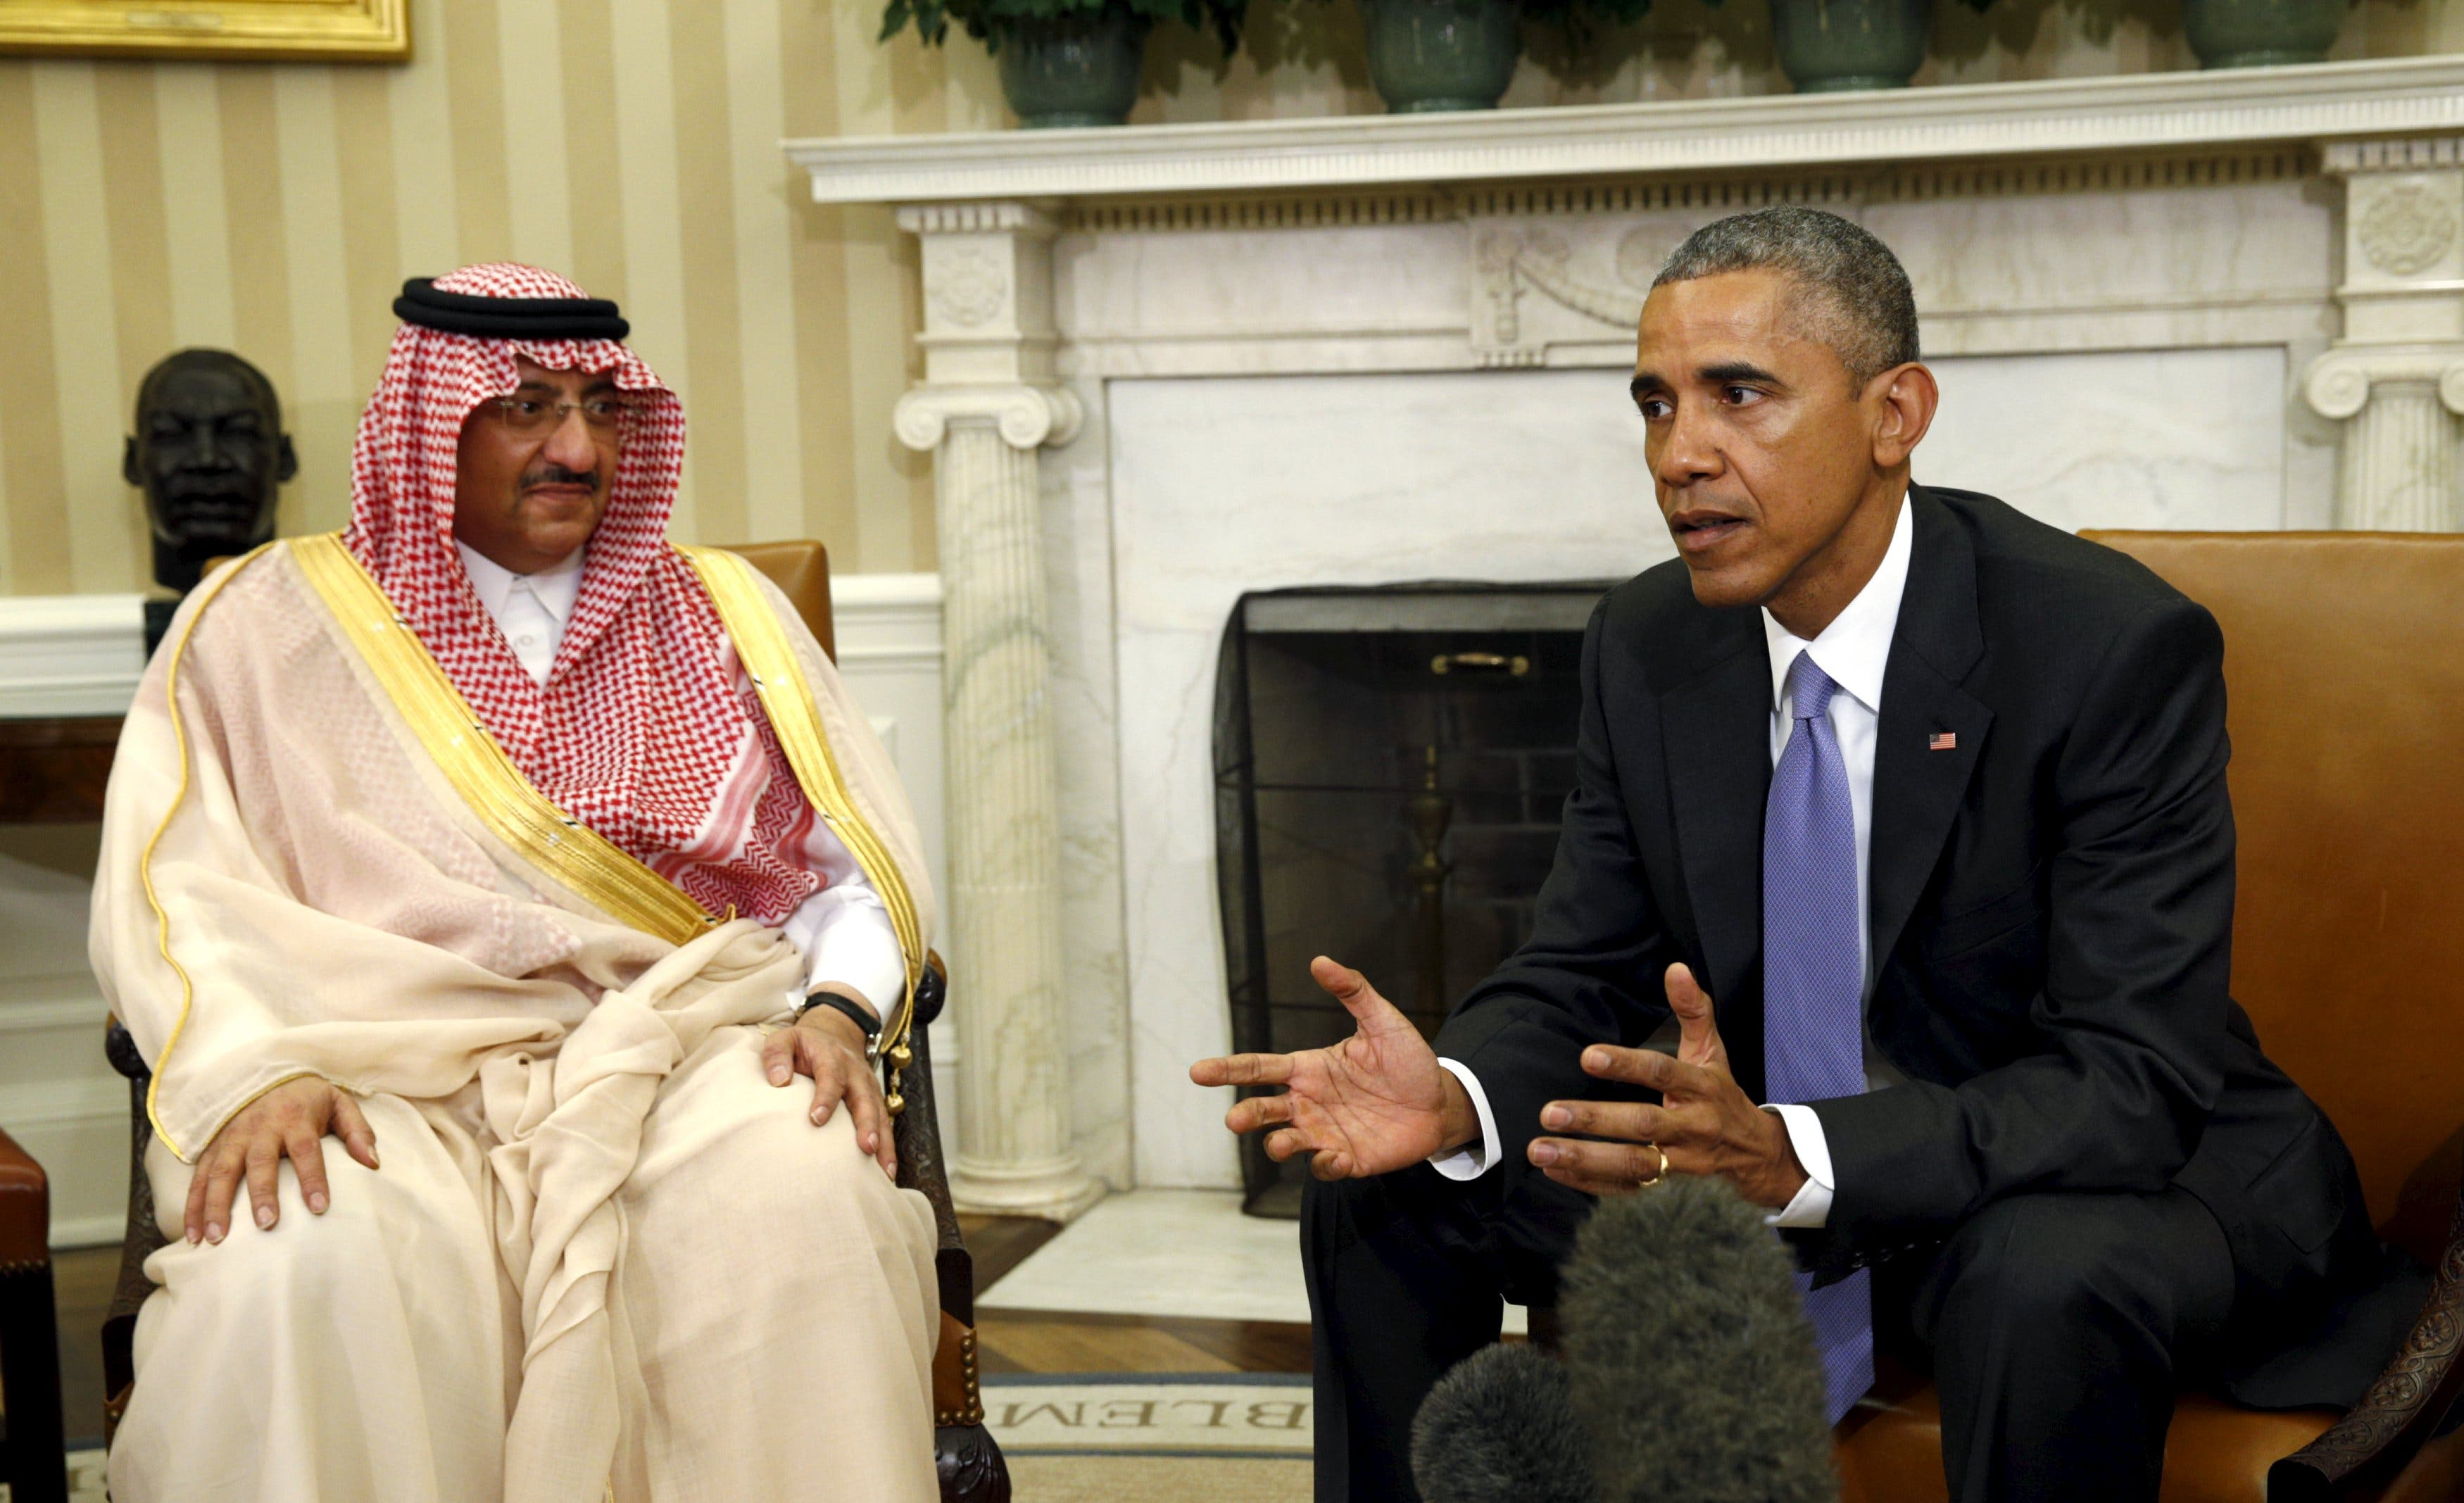 U.S. President Barack Obama meets with Crown Prince Mohammad bin Nayef of Saudi Arabia in the Oval Office of the White House in Washington May 13, 2015. (Reuters)